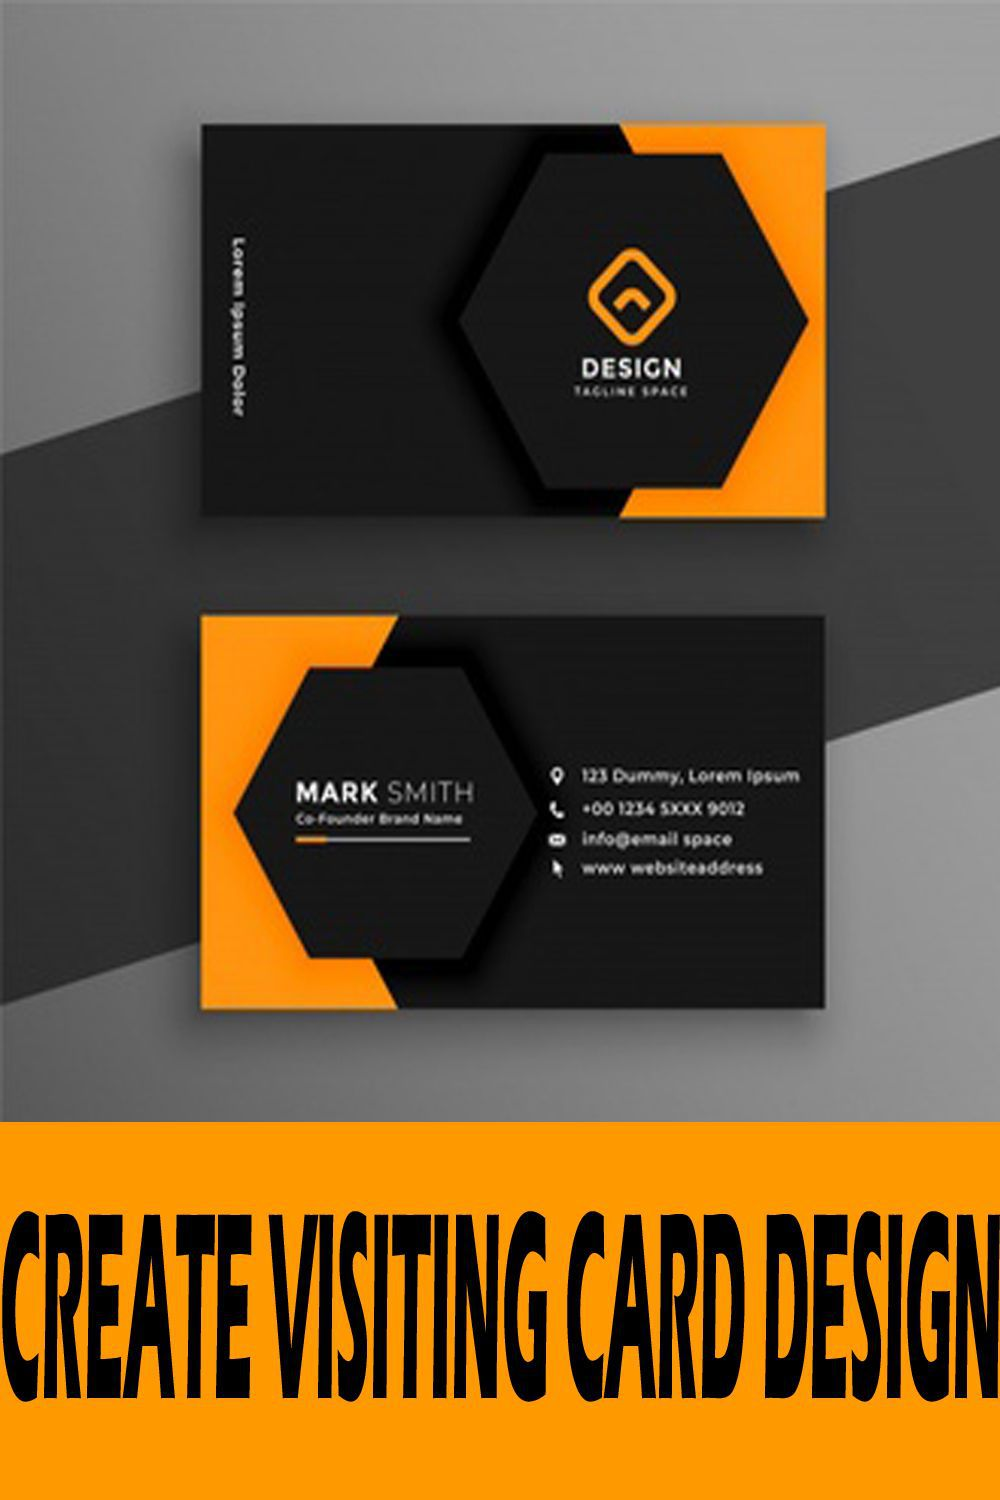 000 Fascinating Blank Busines Card Template Psd Free Download Example  PhotoshopFull